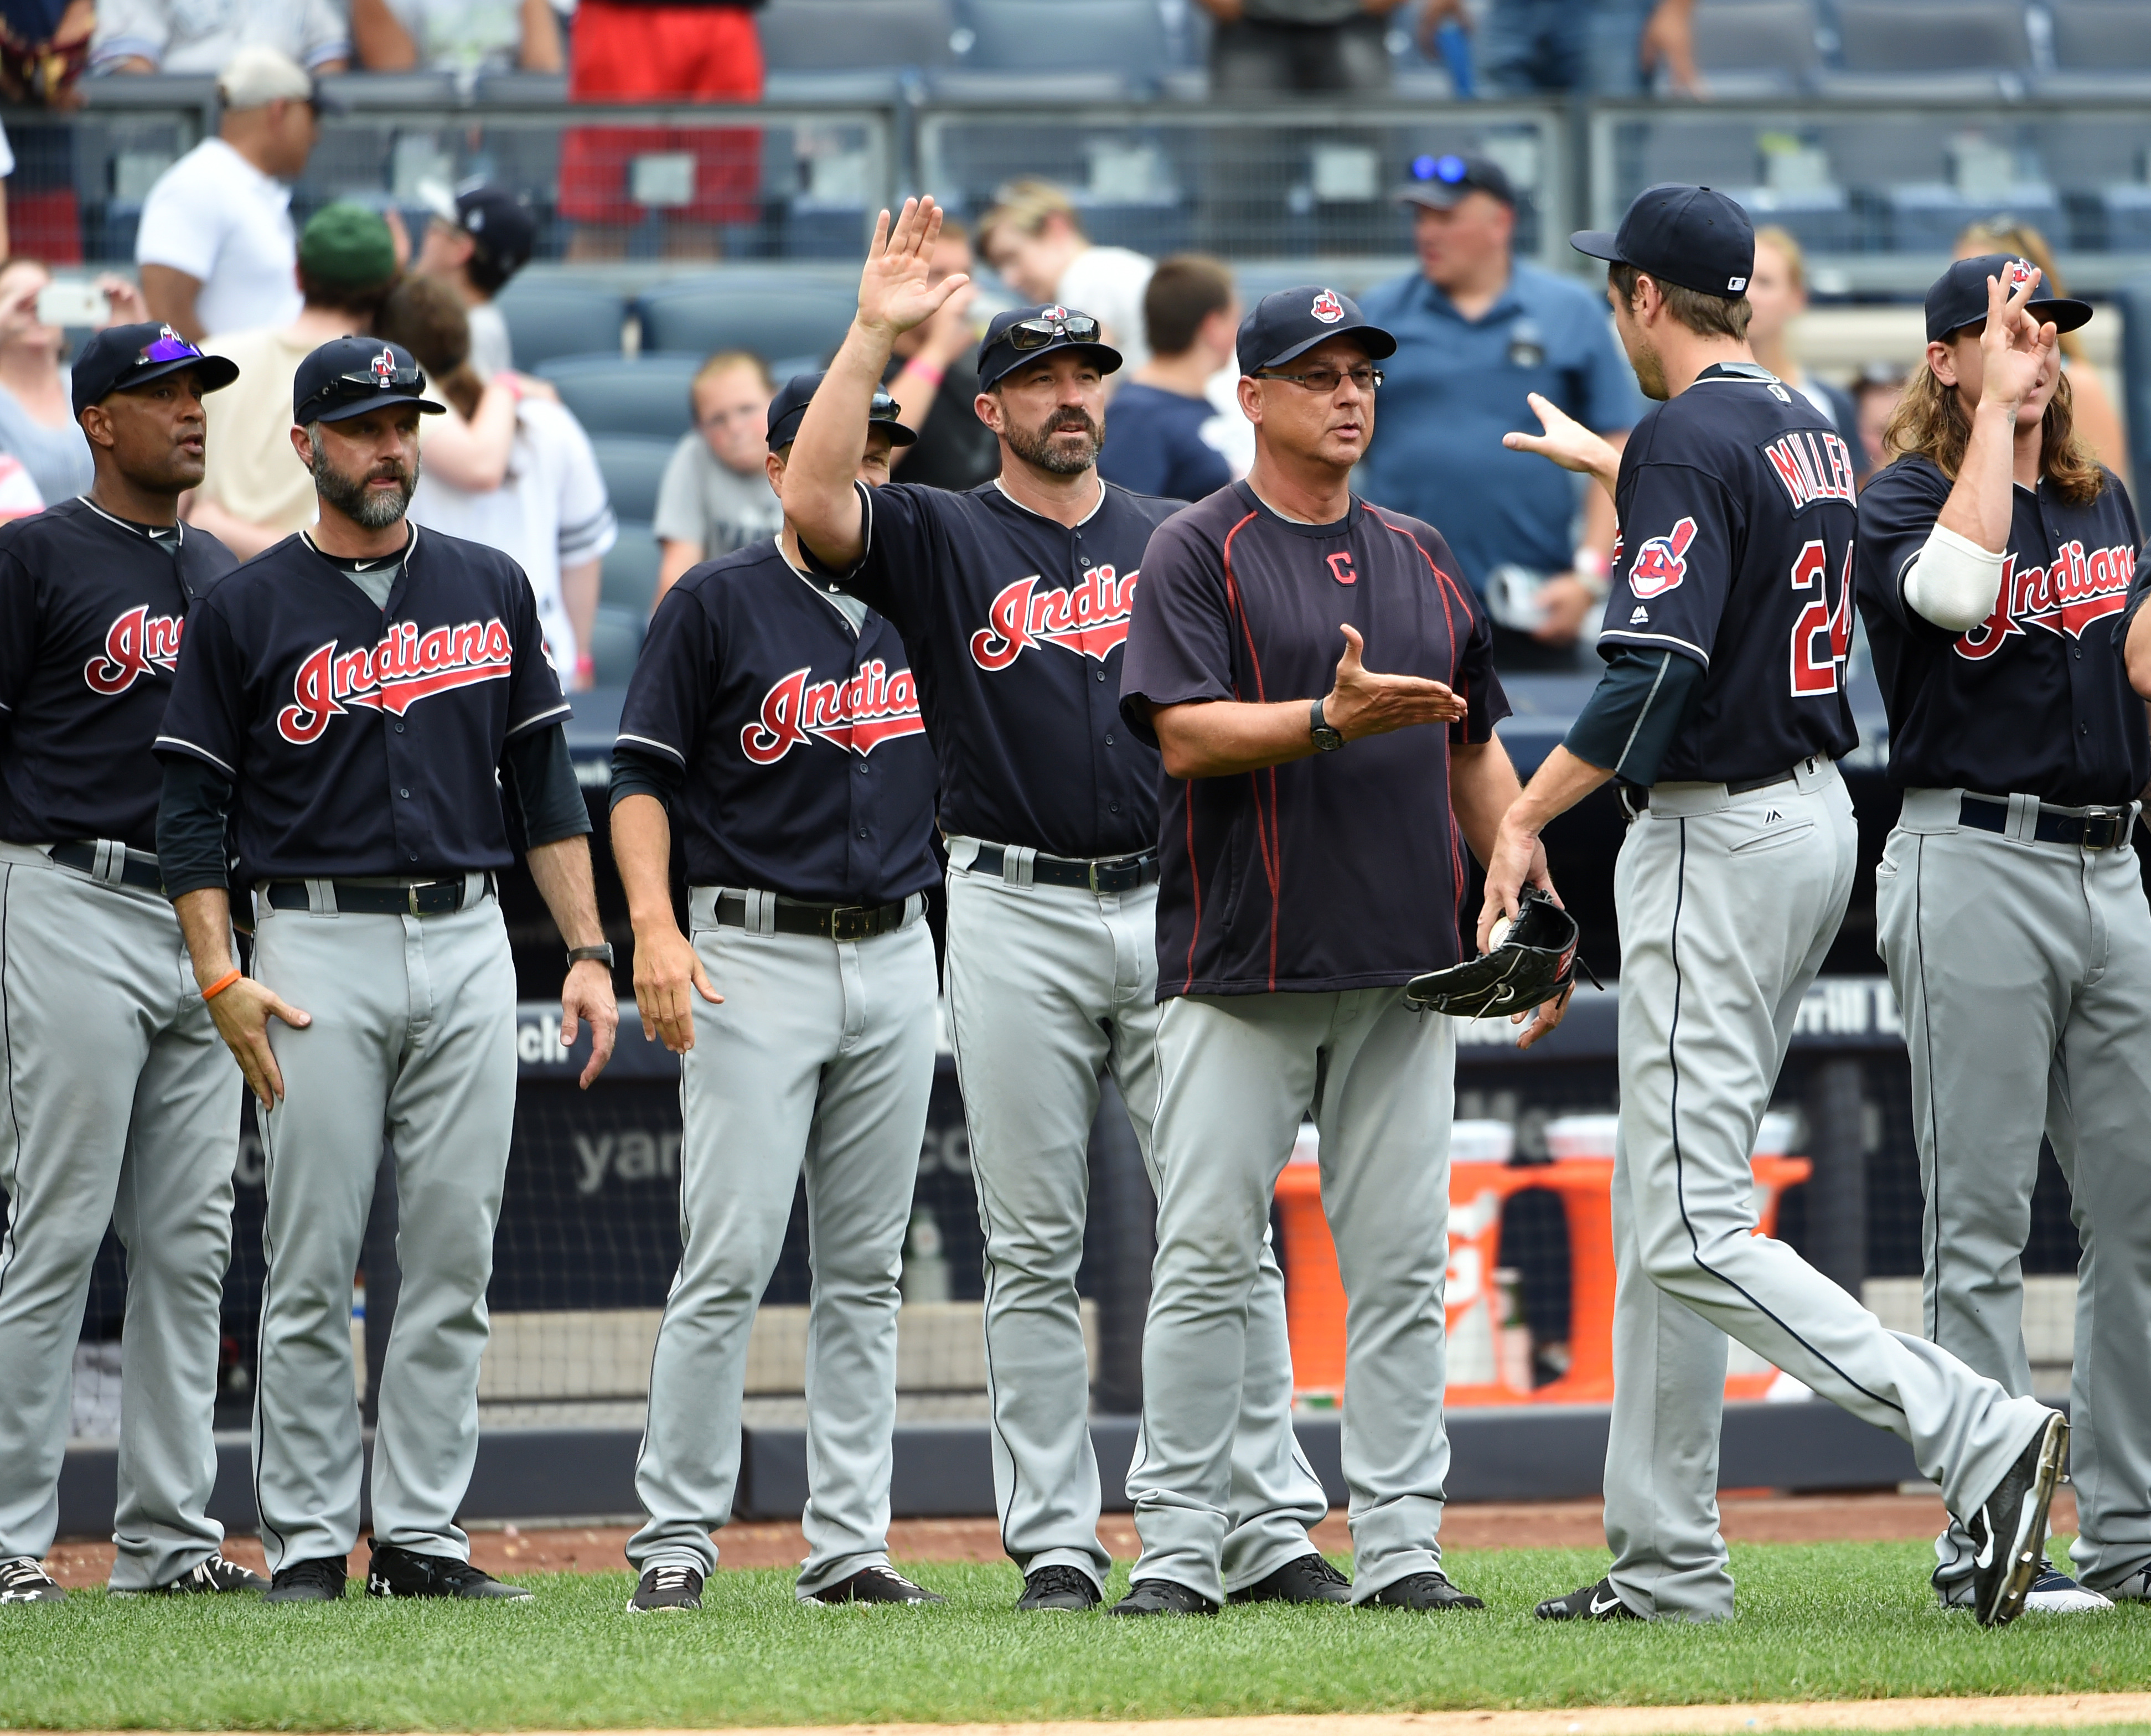 Cleveland Indians relief pitcher Andrew Miller (24) is congratulated by manager Terry Francona, third from right, and teammates after the Indians beat the New York Yankees 5-2 in a baseball game, Saturday, Aug. 6, 2016, in New York. (AP Photo/Kathy Kmonic